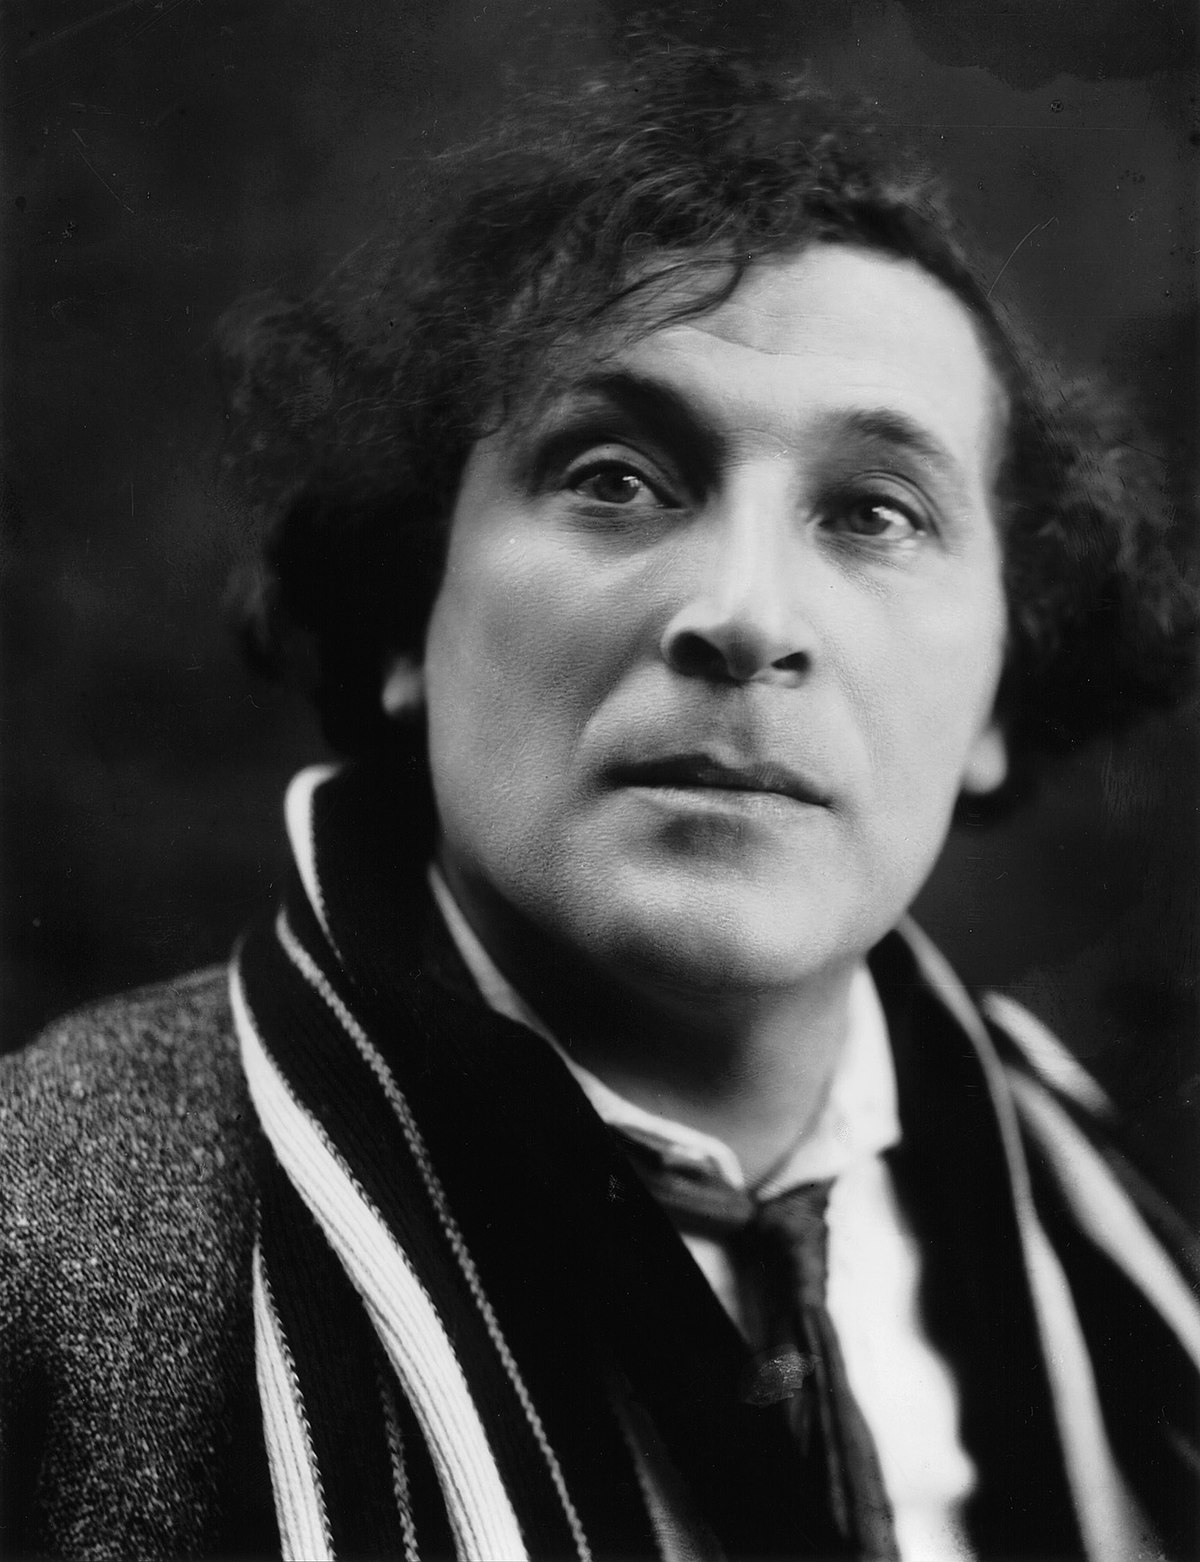 marc chagall bio : marc chagall and wife :  marc chagall 2021 calendar en 2020/2021